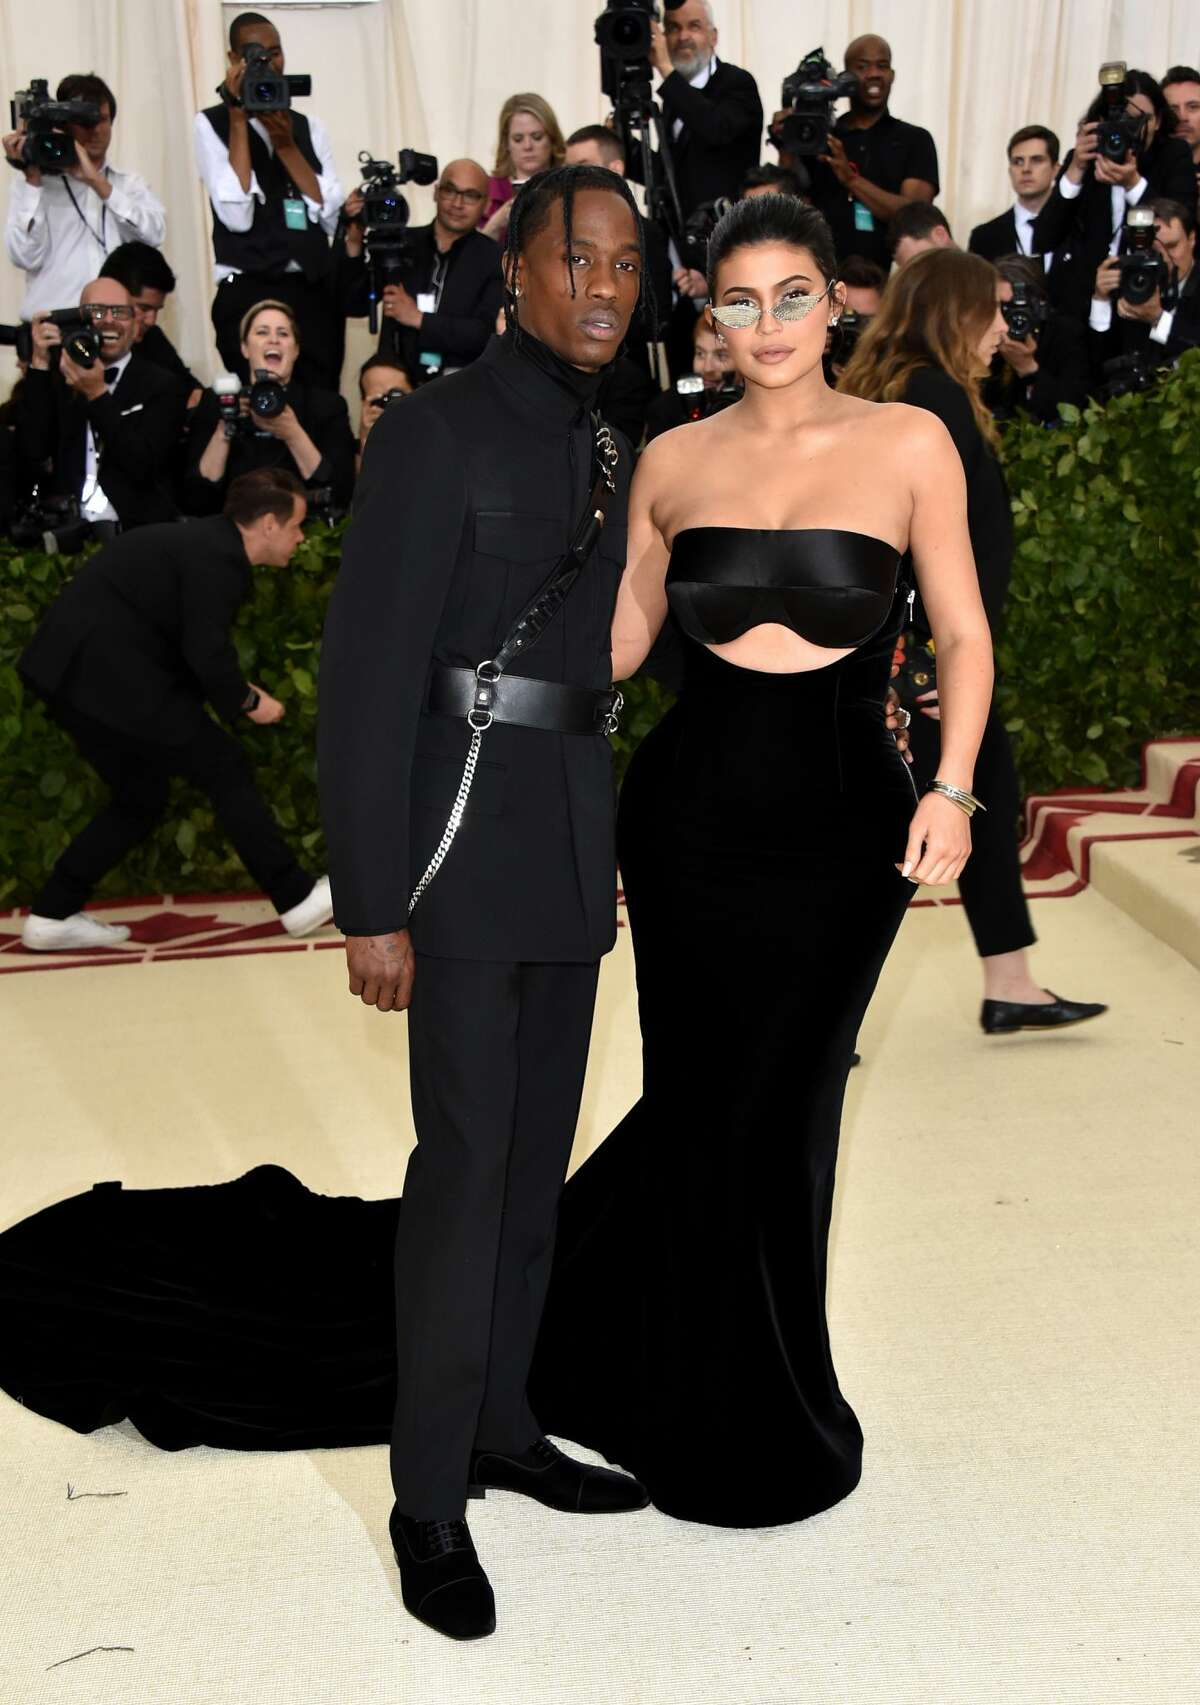 It's thought that Kylie Jenner is in Houston this weekend with her boyfriend Travis Scott. Scott, who hails from Missouri City, is set to host Astroworld festival at NRG Park on November 17. (Photo by John Shearer/Getty Images for The Hollywood Reporter)